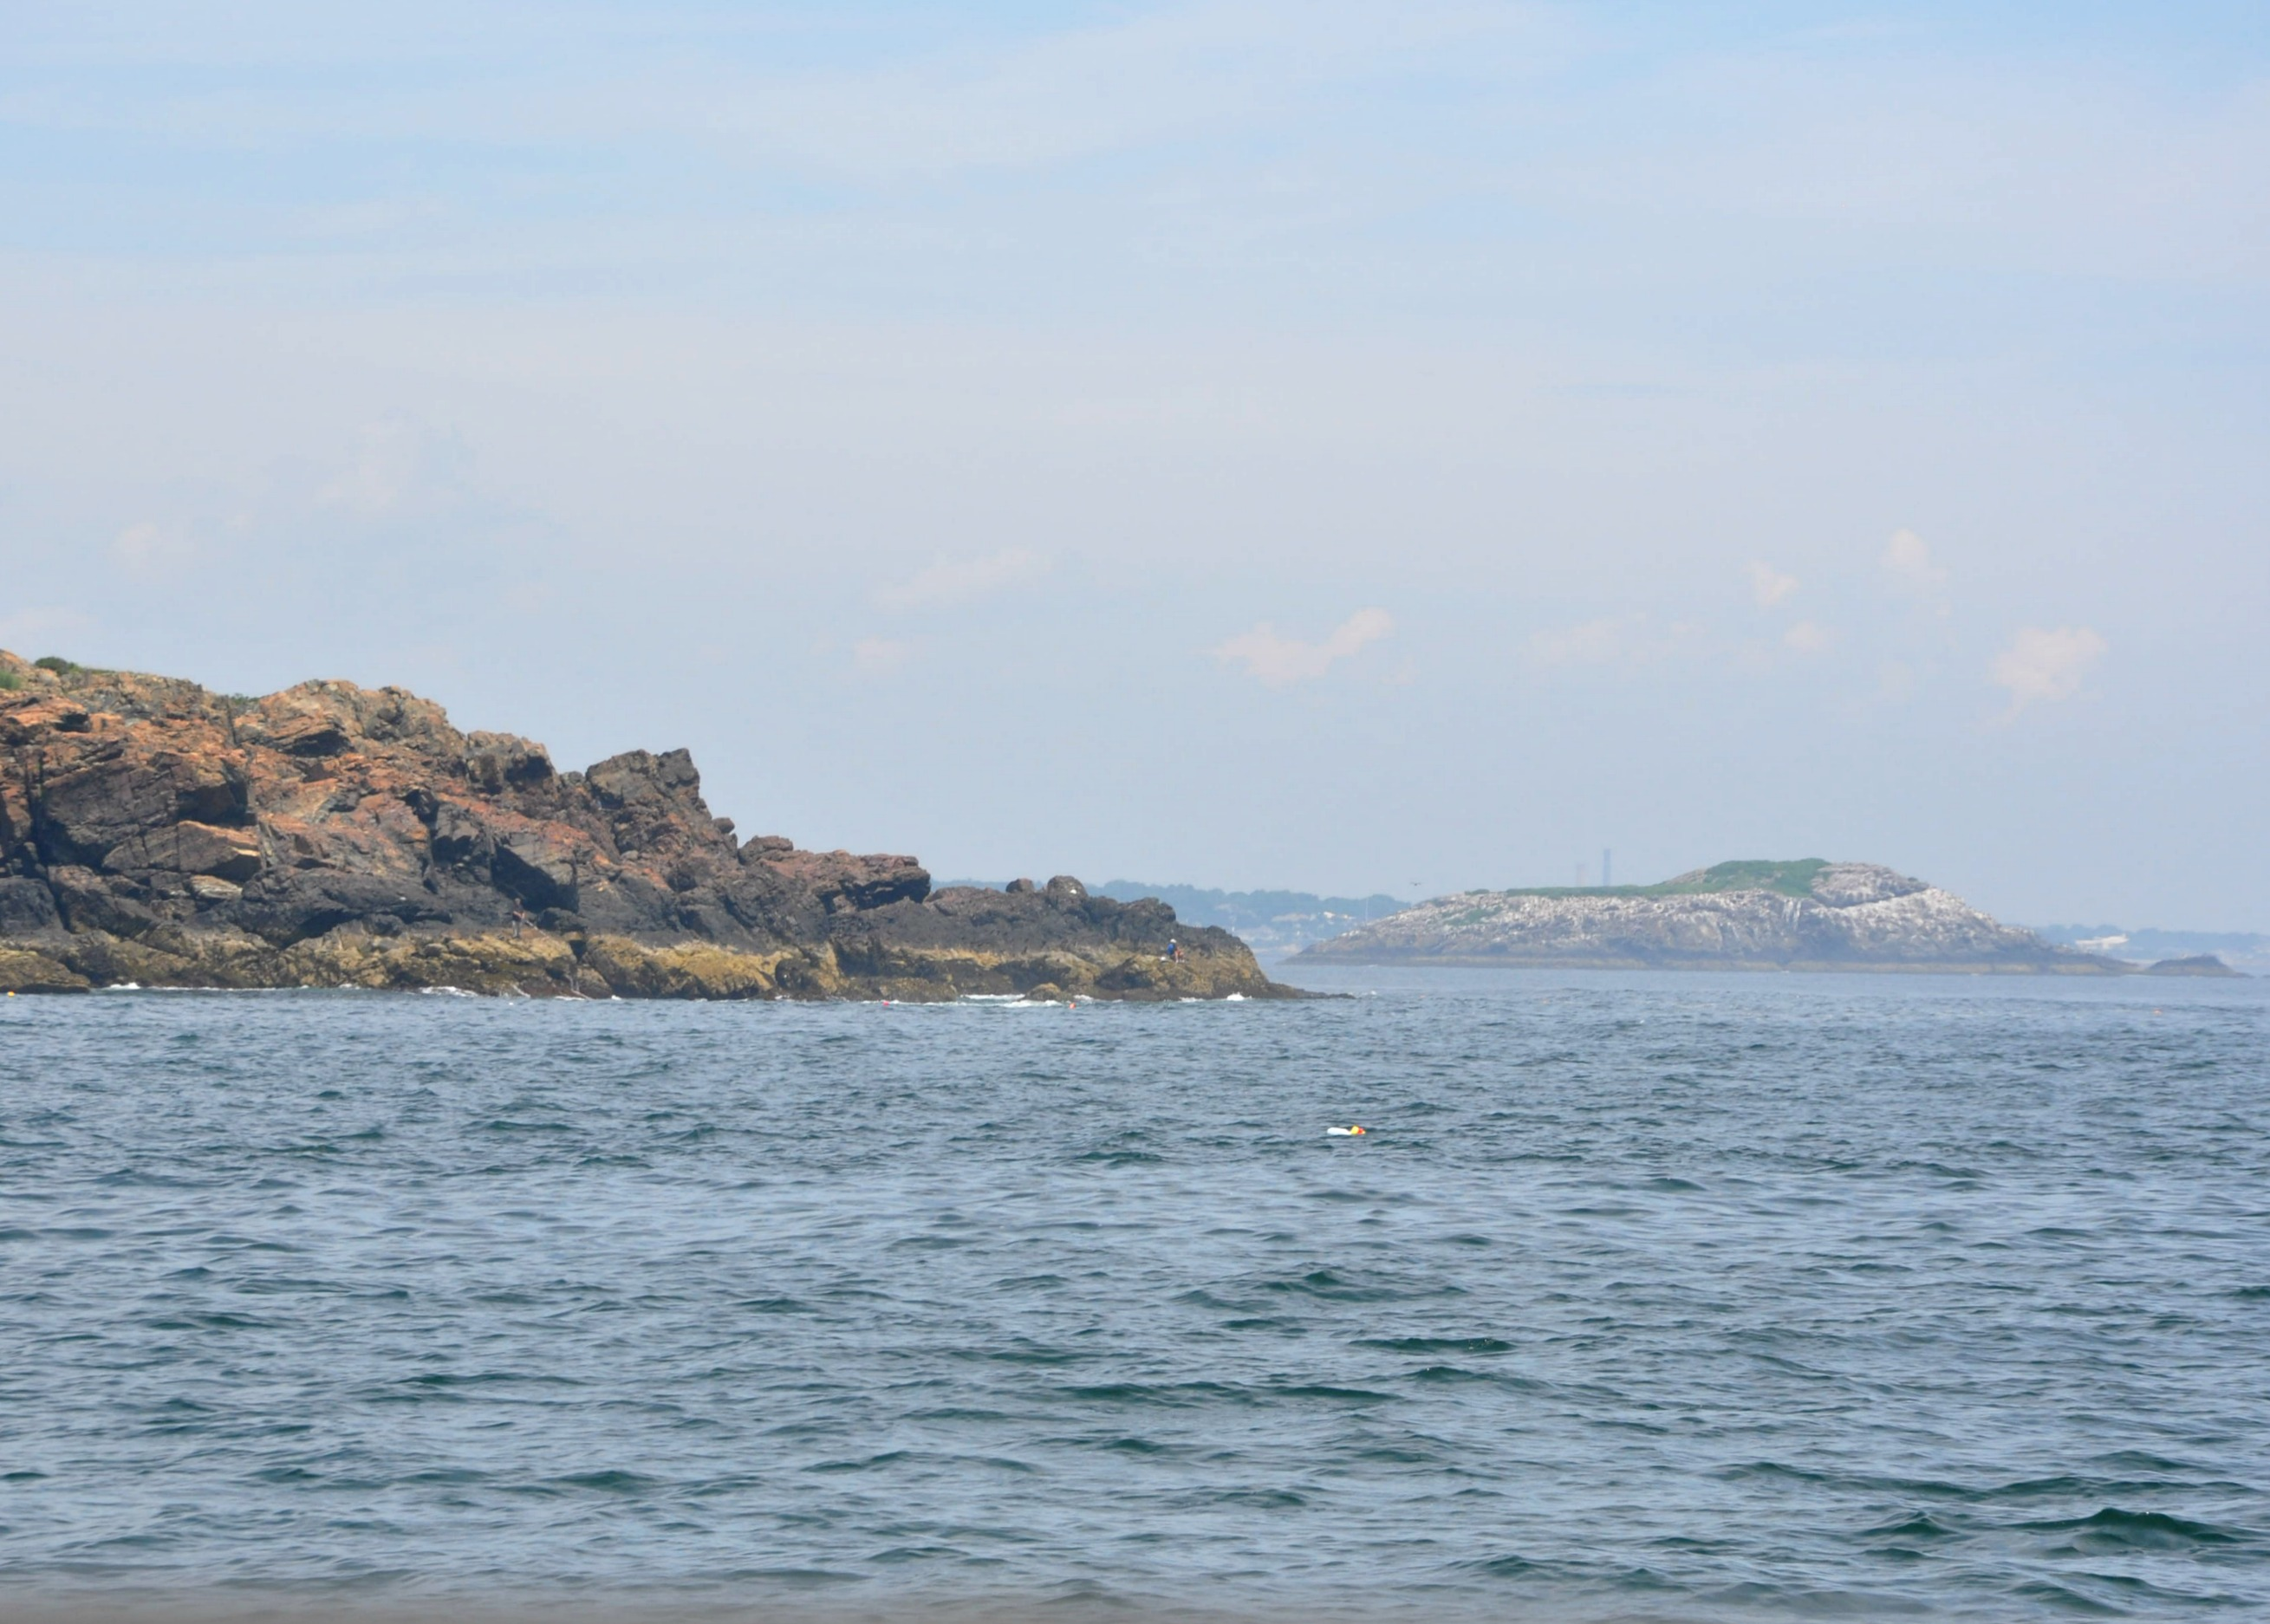 Visiting the north shore by boat boston harbor beaconboston 5 the breakers further north off the swampscott shores lie several rock outcrops and ledges such as ram island and the pig rocks nvjuhfo Choice Image